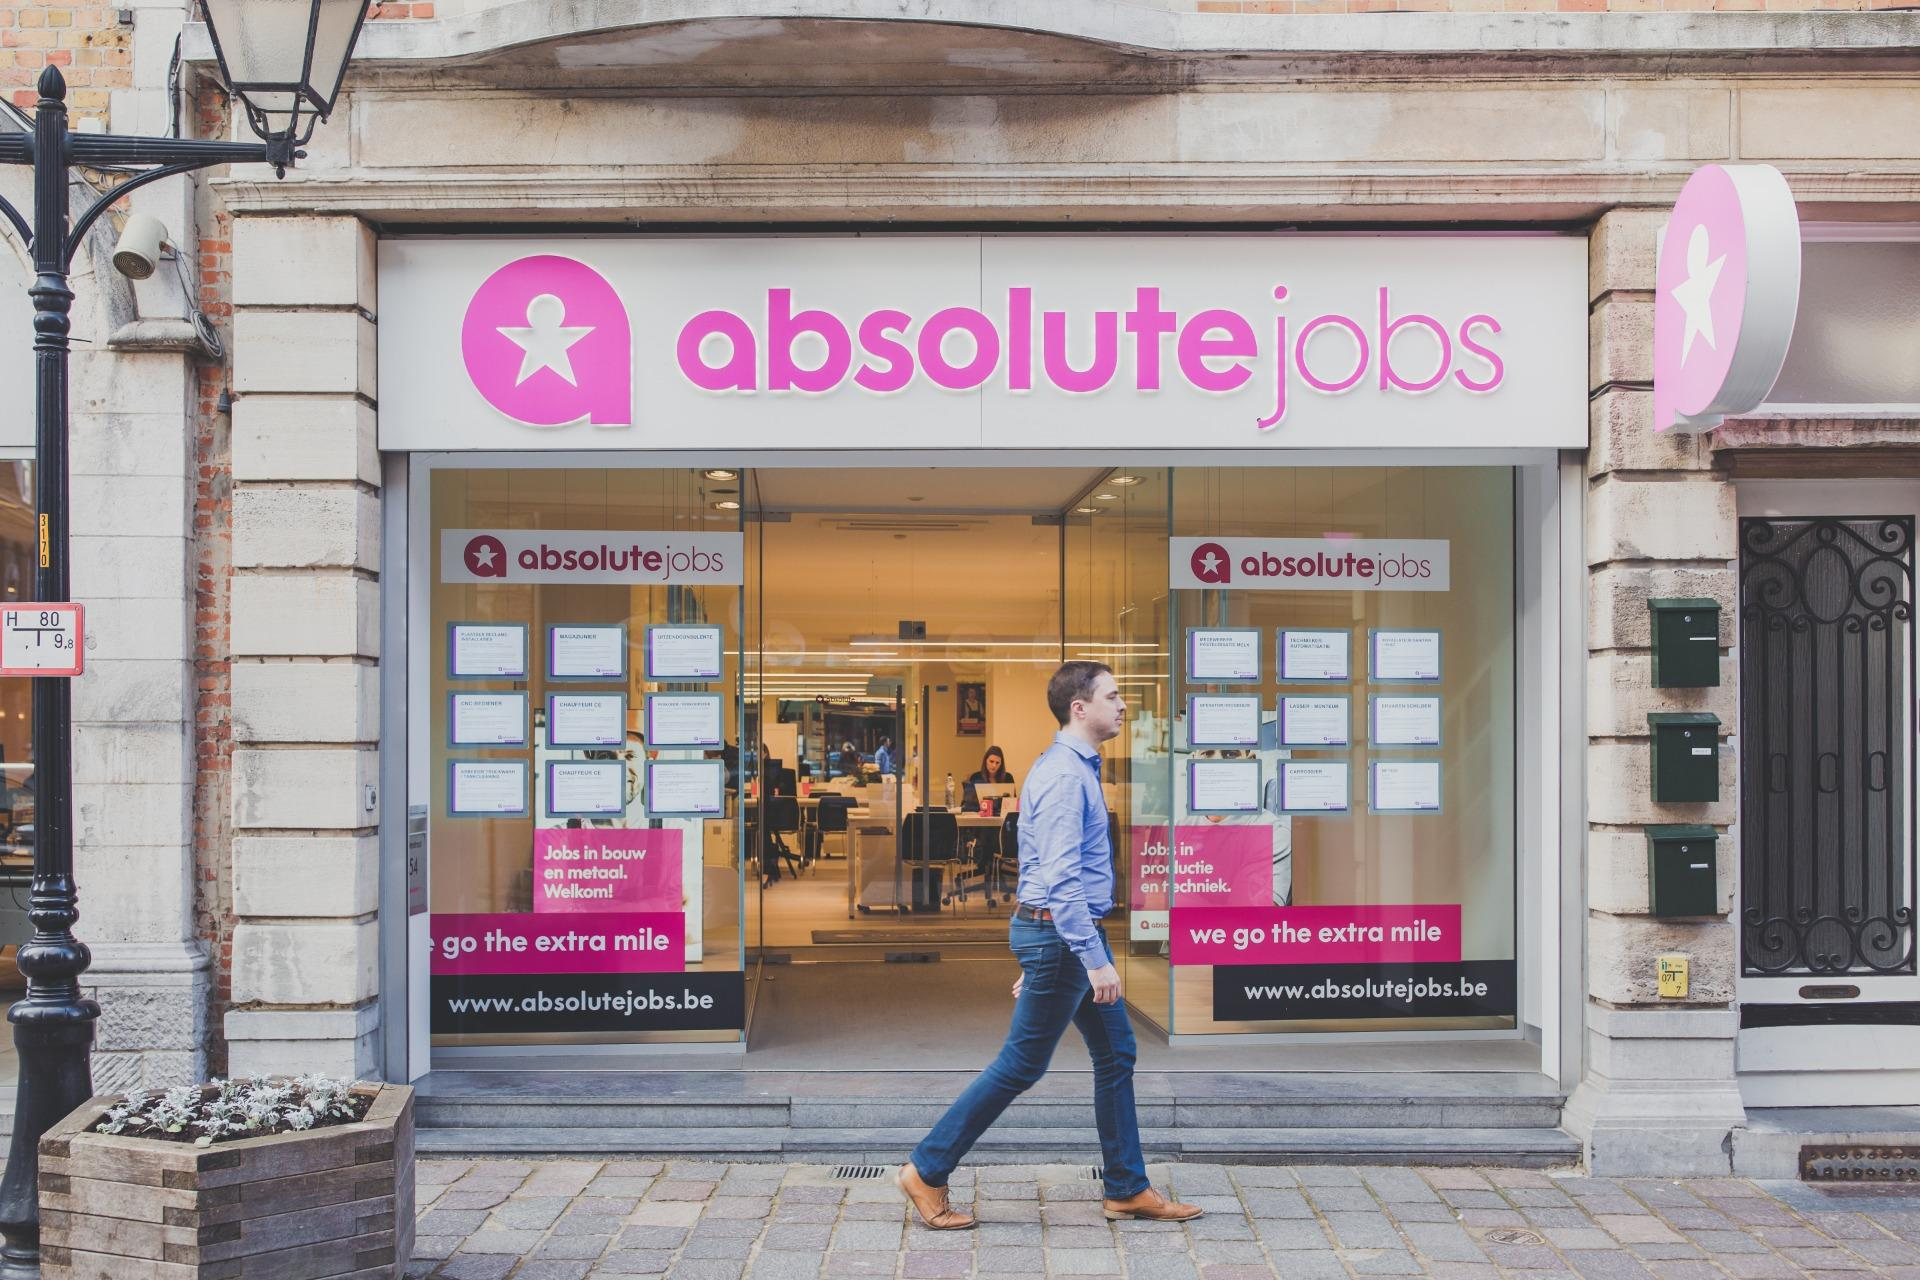 absolute jobs Ieper